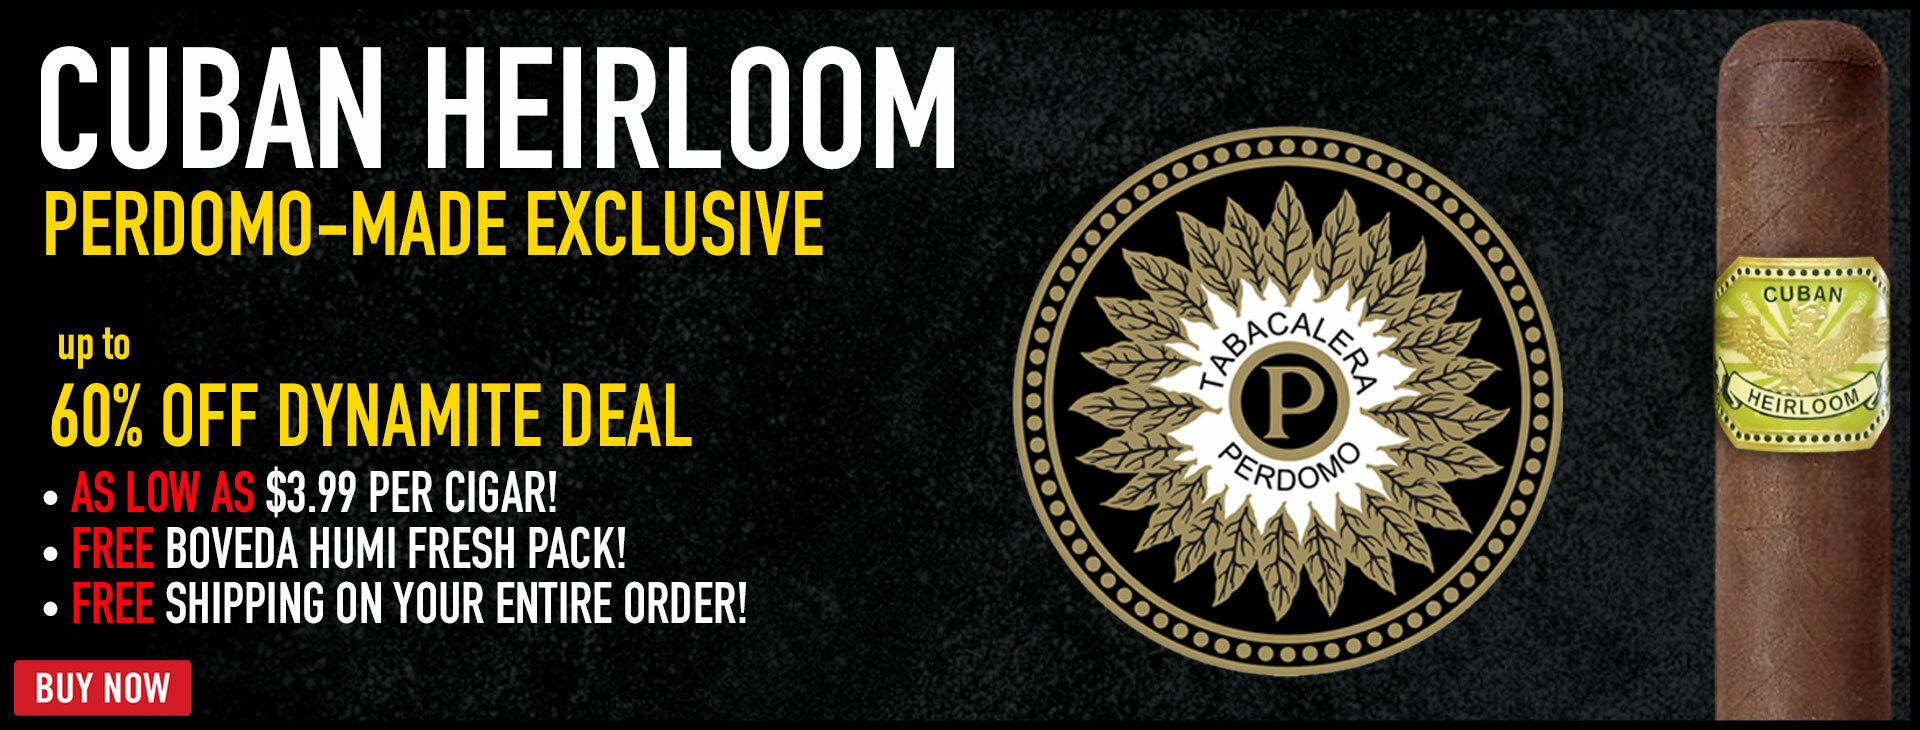 PRICE DROP: $3.99 Perdomo Cigars!